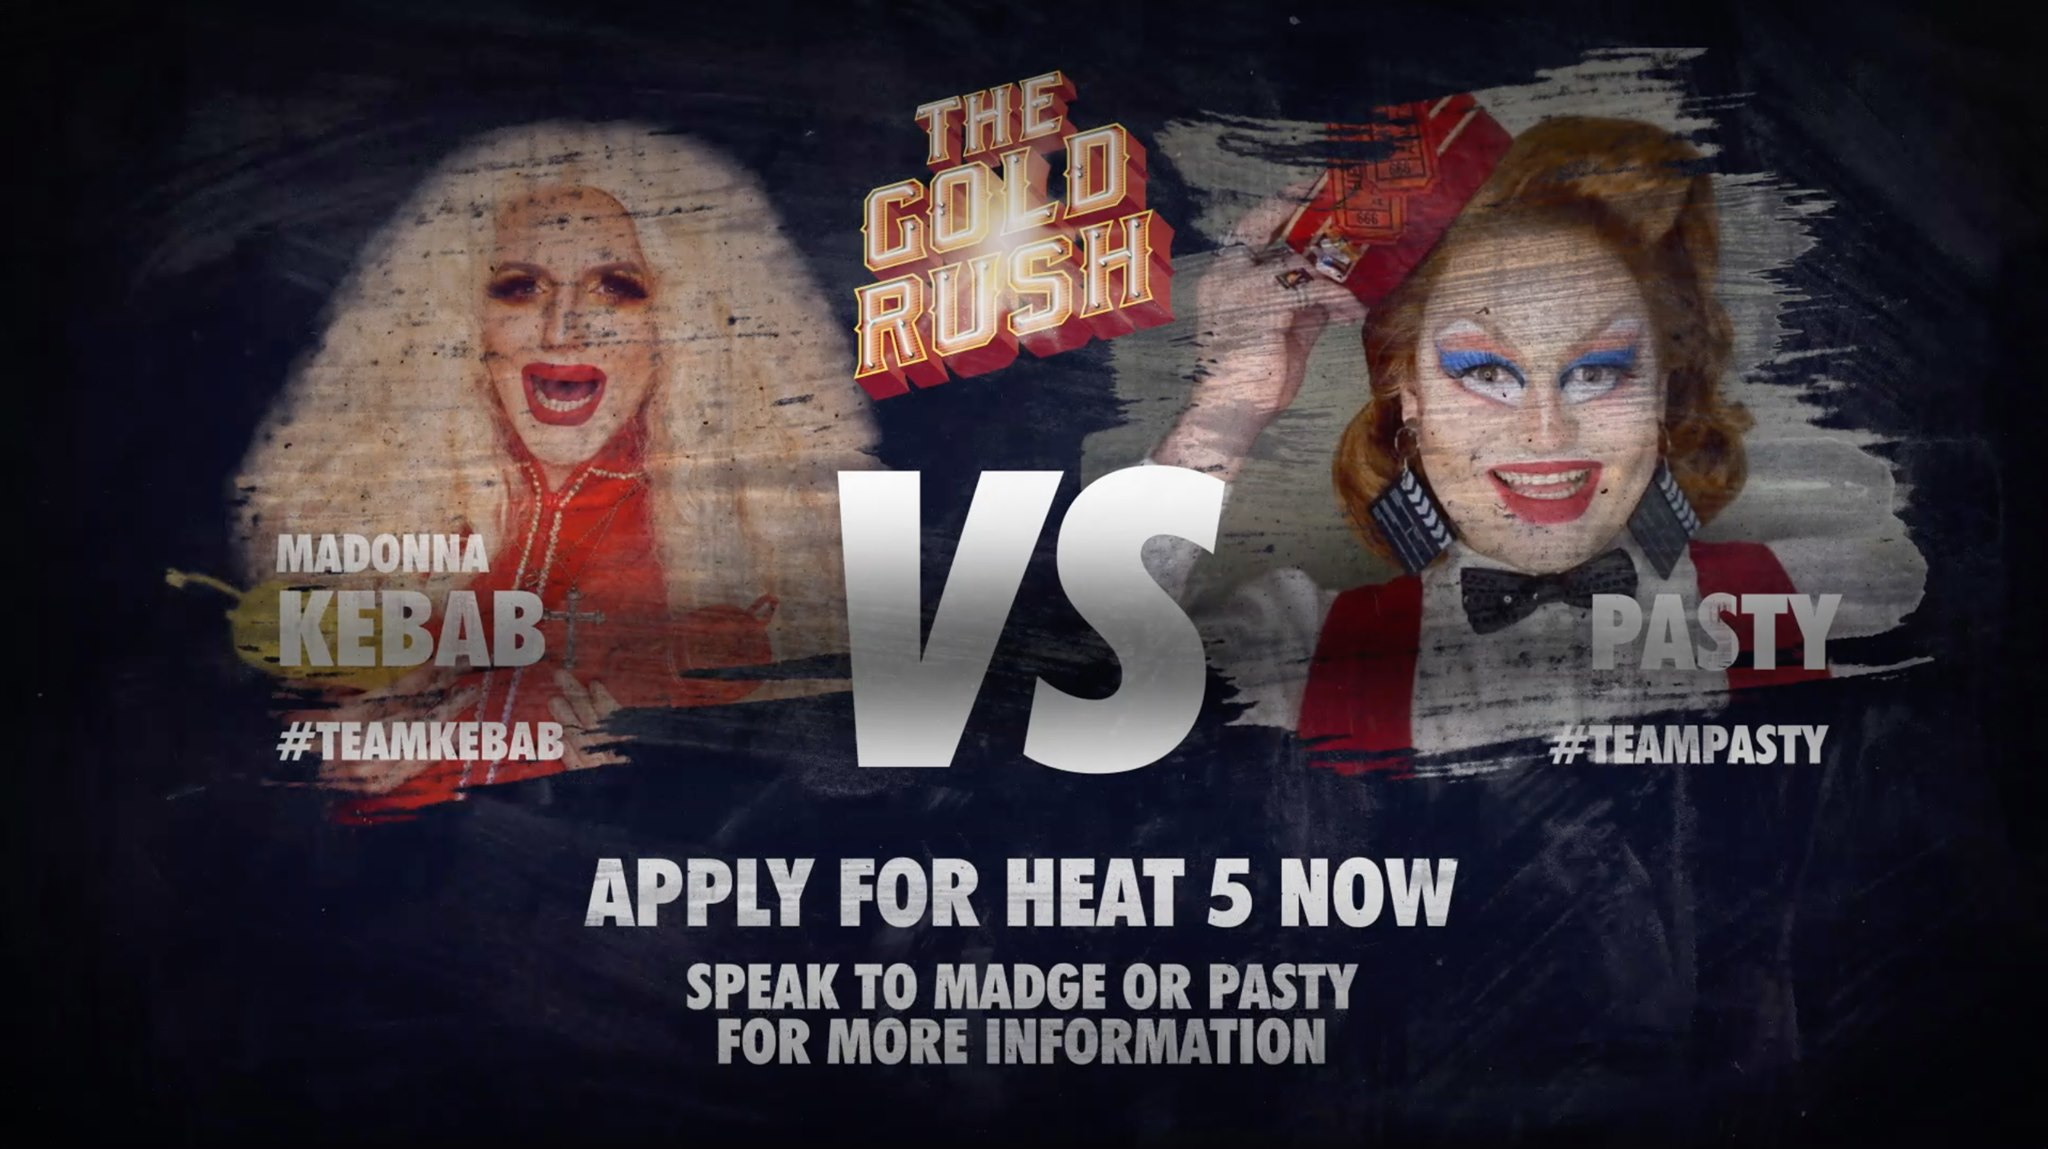 The Gold Rush Season 4 Heat 5